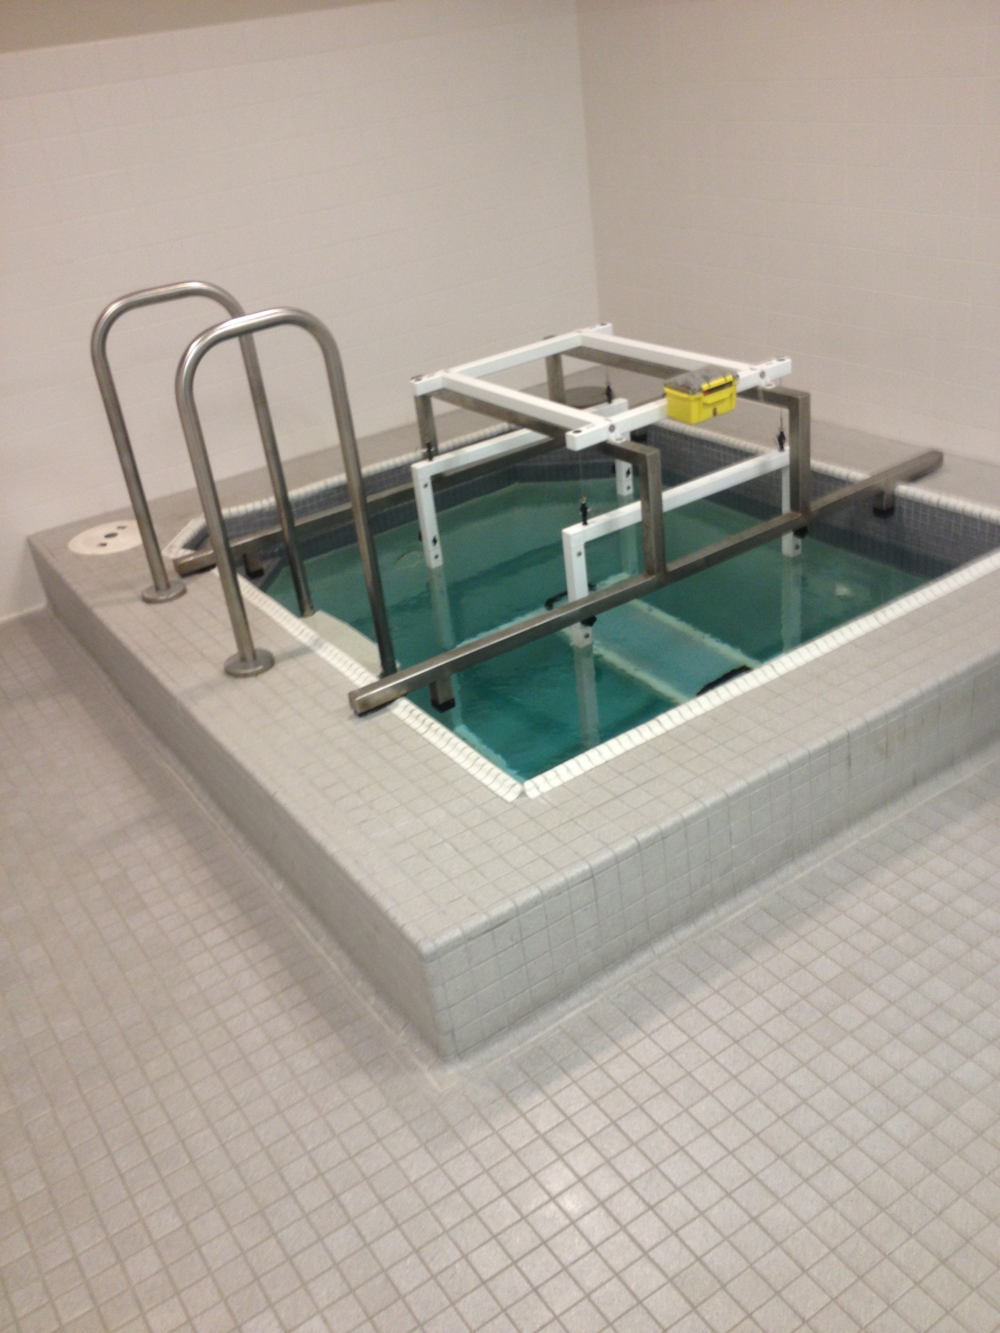 The Underwater chamber used for Hydrostatic Weighing